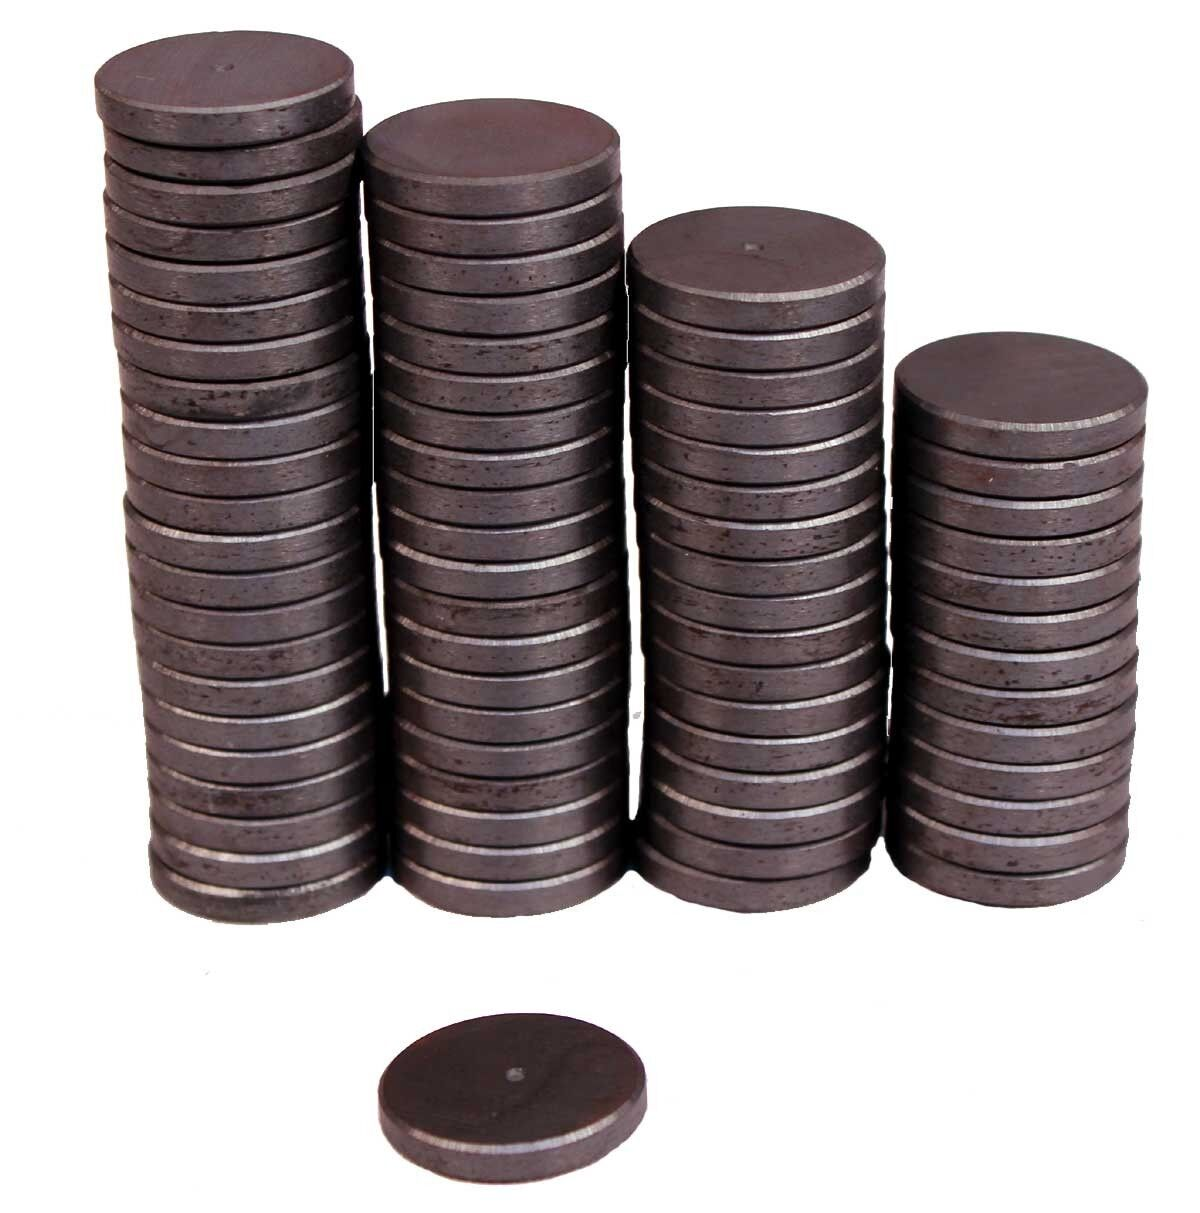 Strong 1″ Round Flat Ceramic Disc Magnets For DIY Crafts ~Bulk Lot of 500 Pcs All-Purpose Craft Supplies